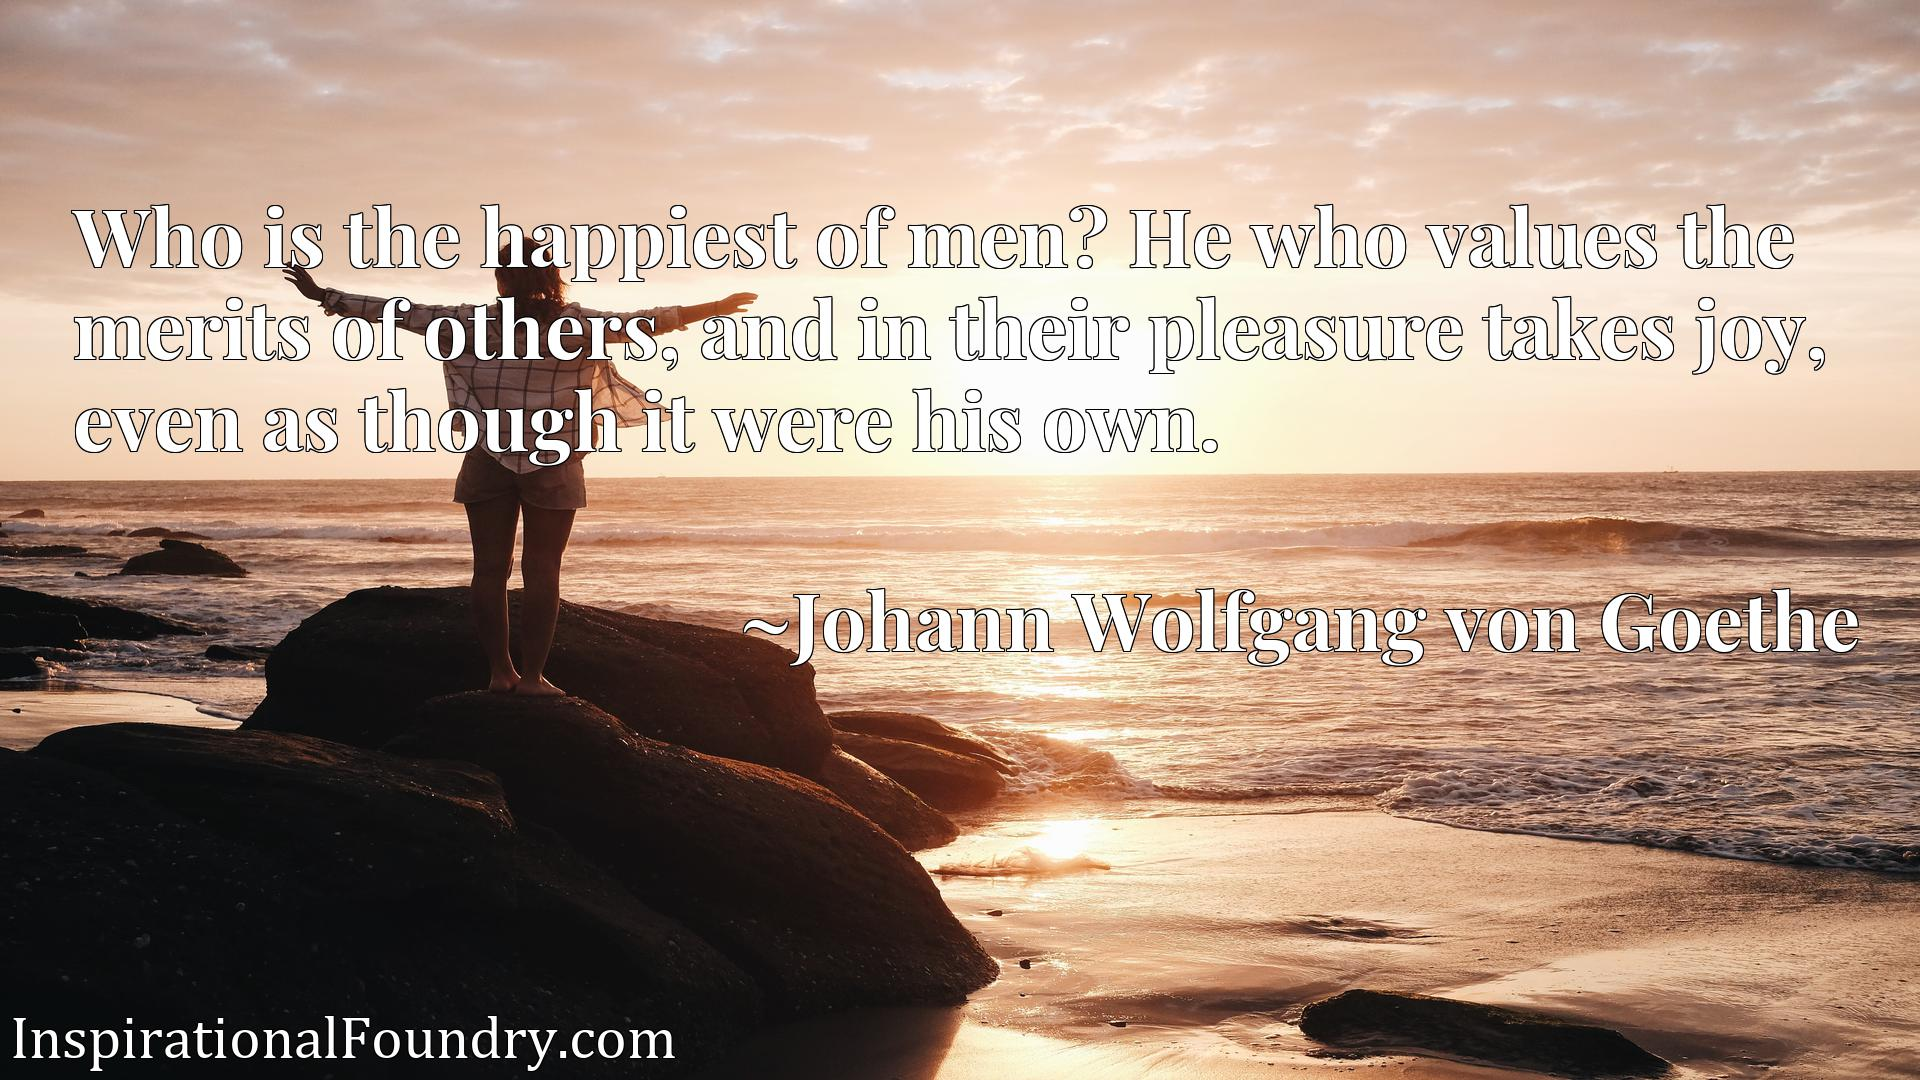 Quote Picture :Who is the happiest of men? He who values the merits of others, and in their pleasure takes joy, even as though it were his own.